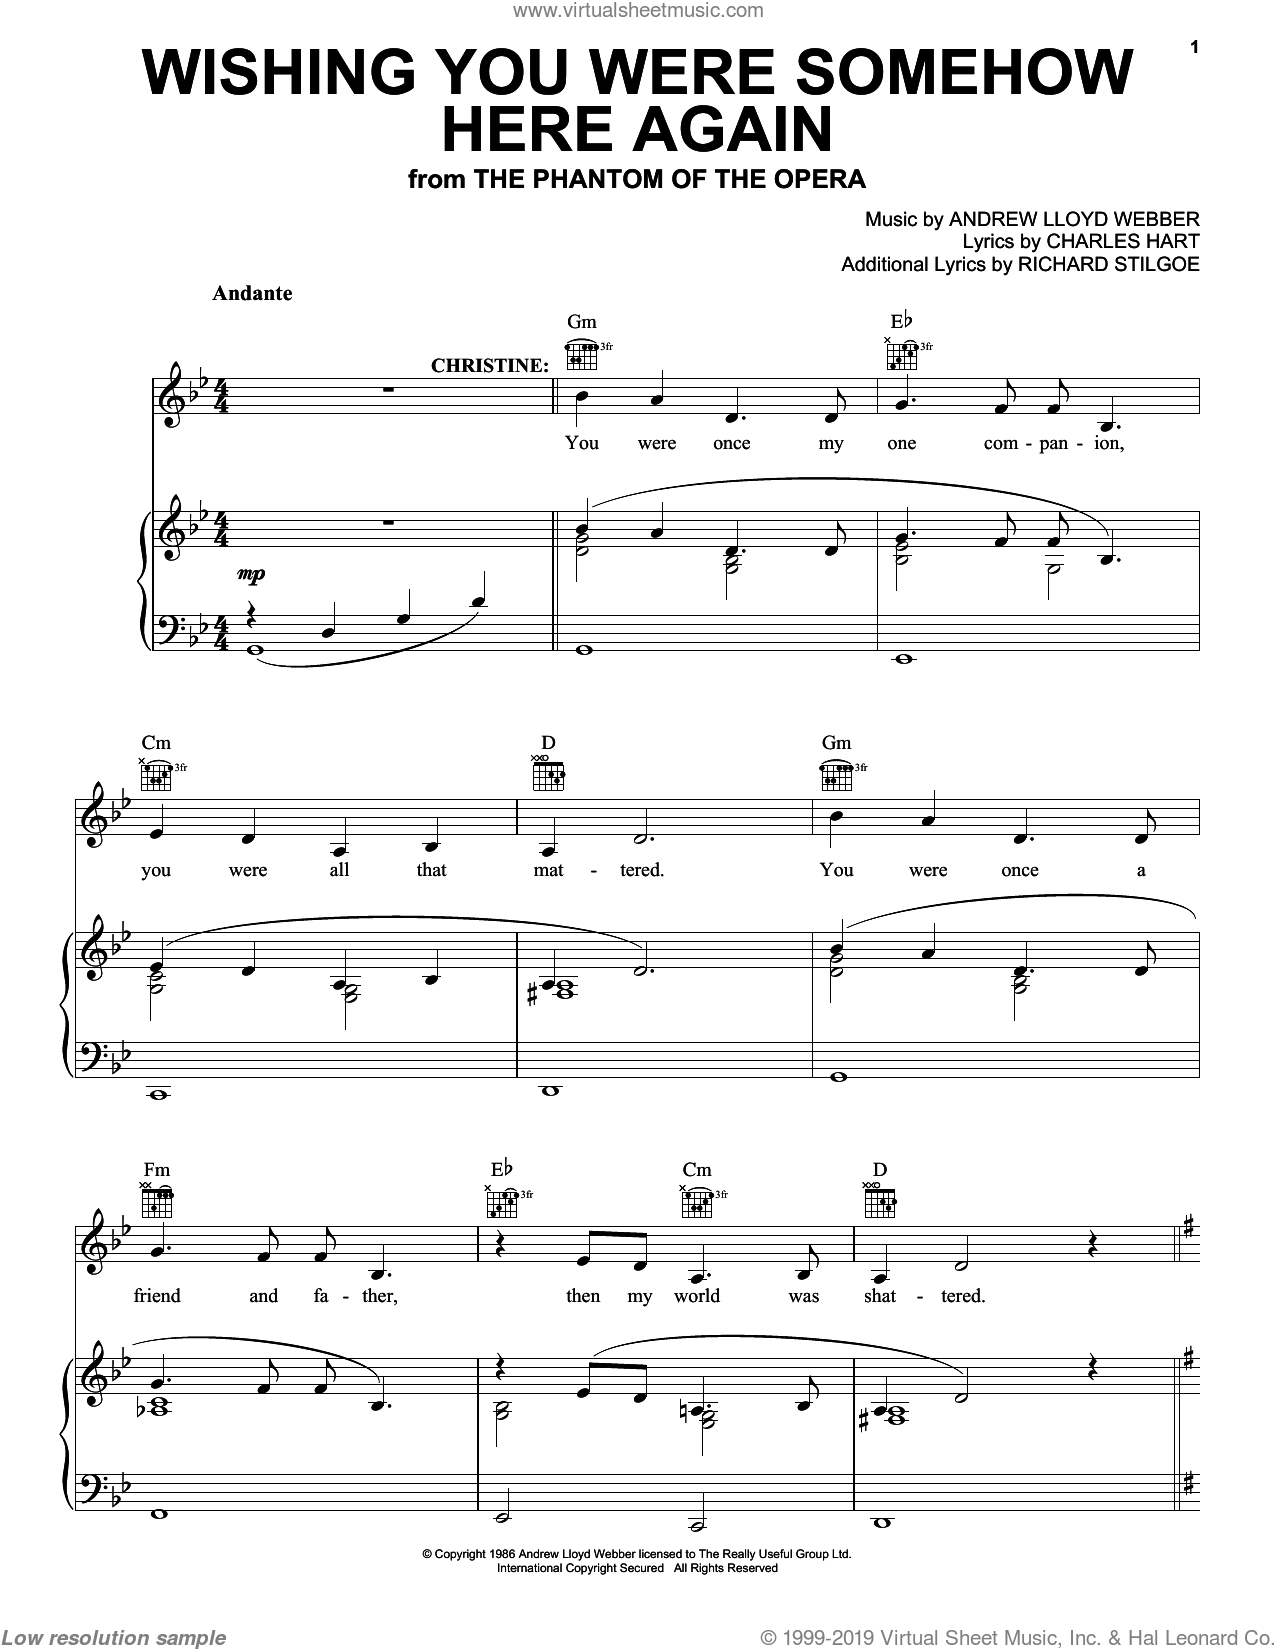 Wishing You Were Somehow Here Again sheet music for voice, piano or guitar by Andrew Lloyd Webber, intermediate voice, piano or guitar. Score Image Preview.